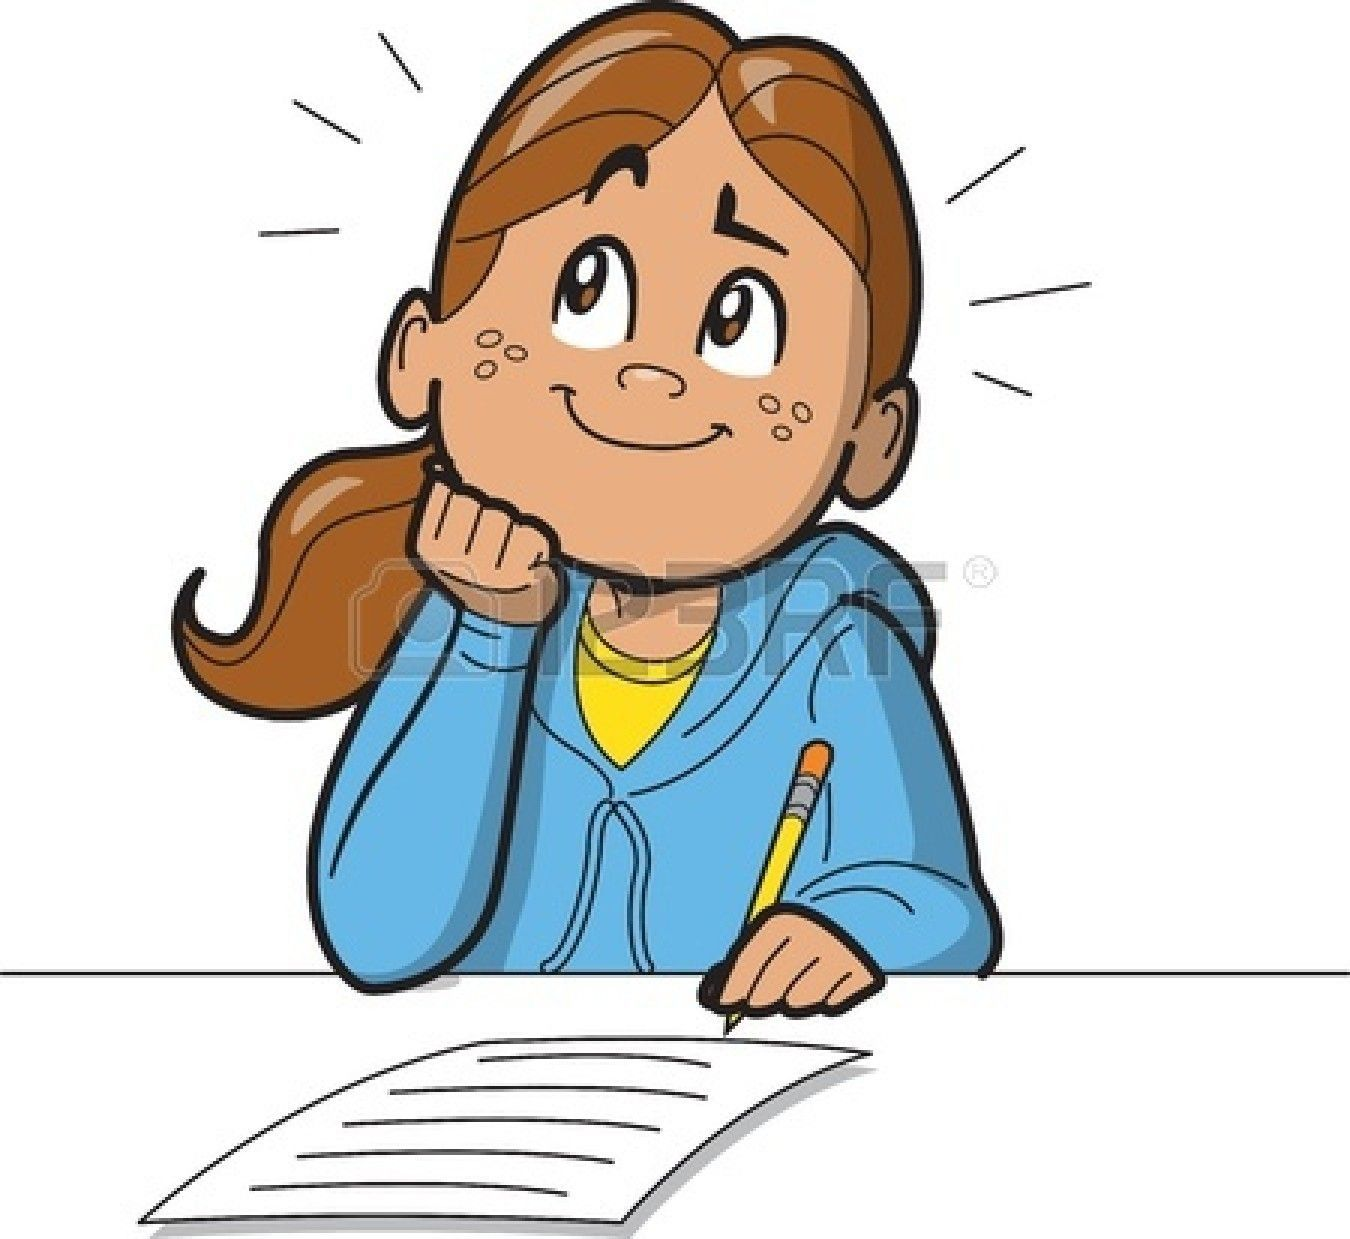 Girl studying for exams clipart 1 » Clipart Portal.